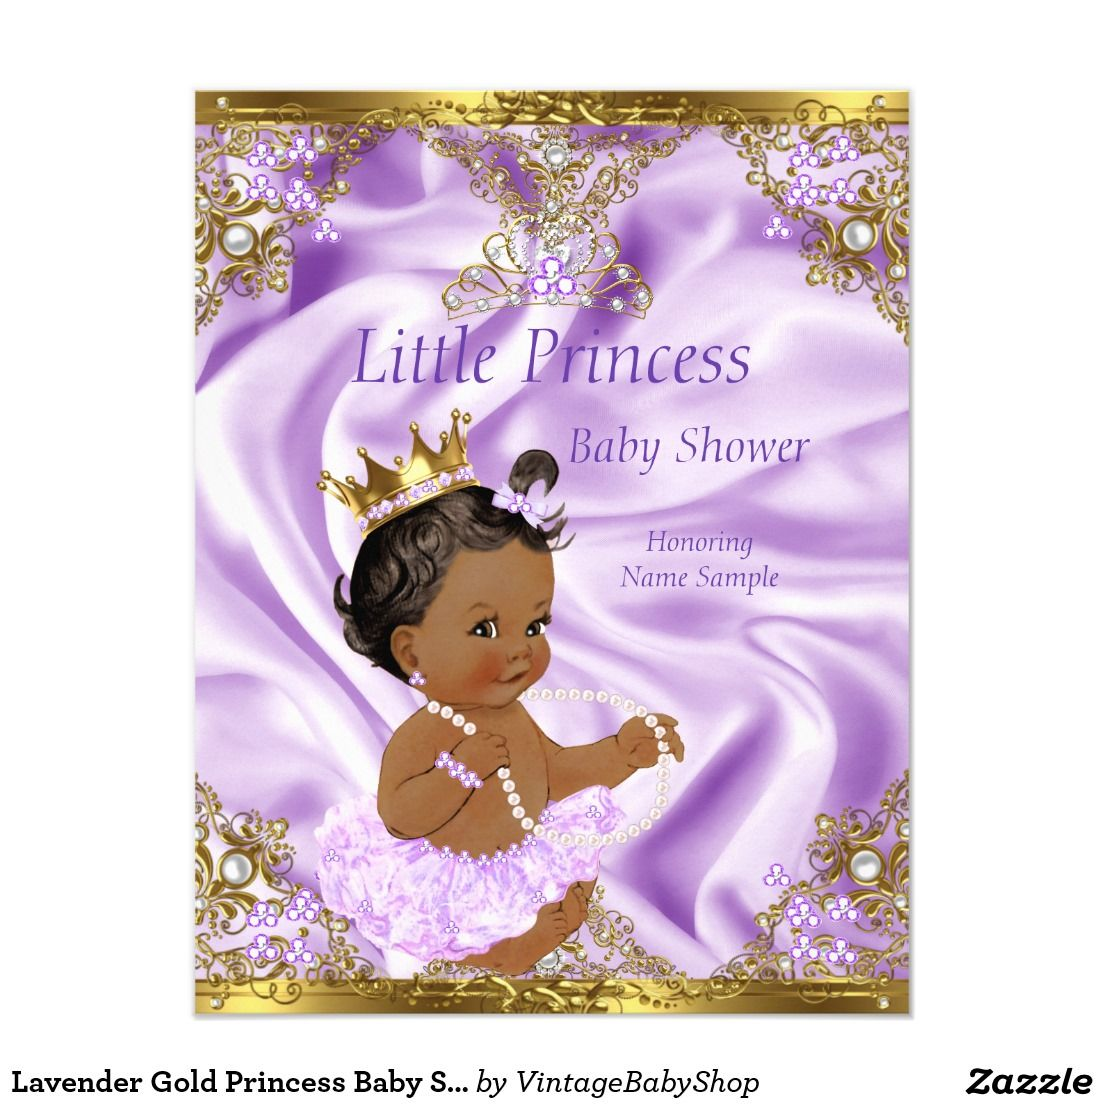 lavender gold princess baby shower ethnic girl card | princesses, Baby shower invitations